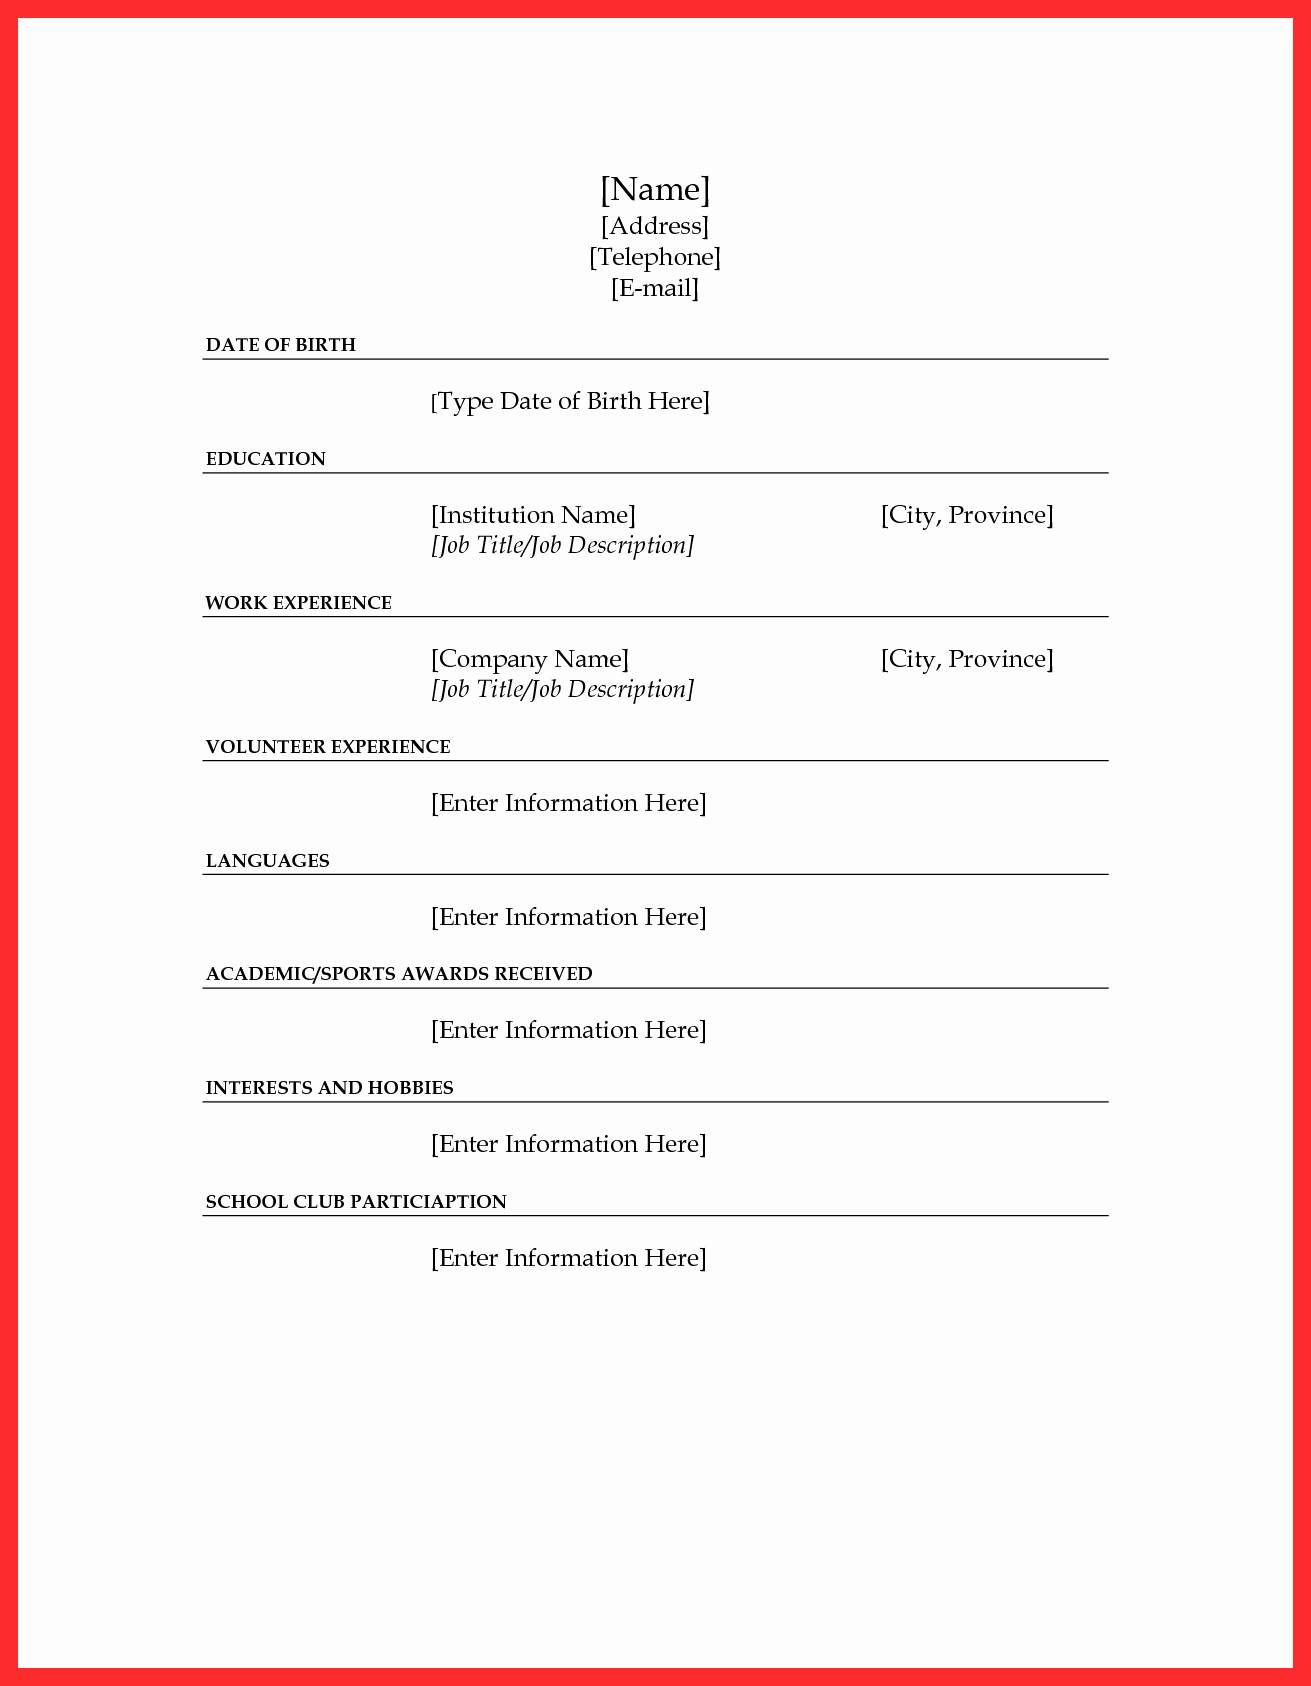 Resume forms to Fill Out Unique Fill In Resume form